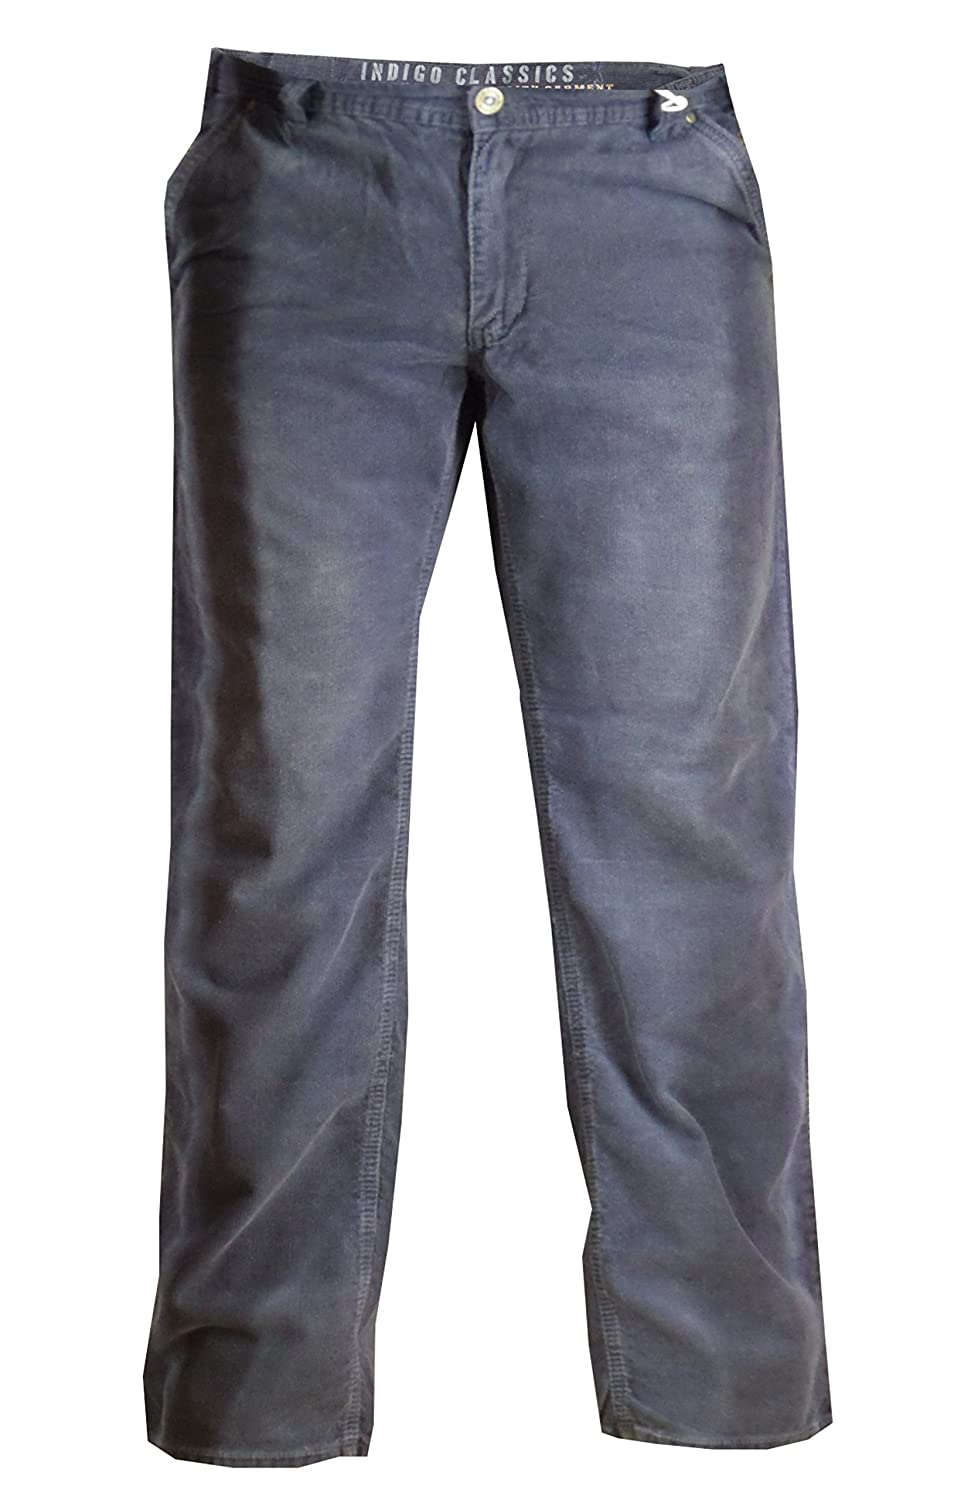 Greyes Men's Trousers Grey Grey 42